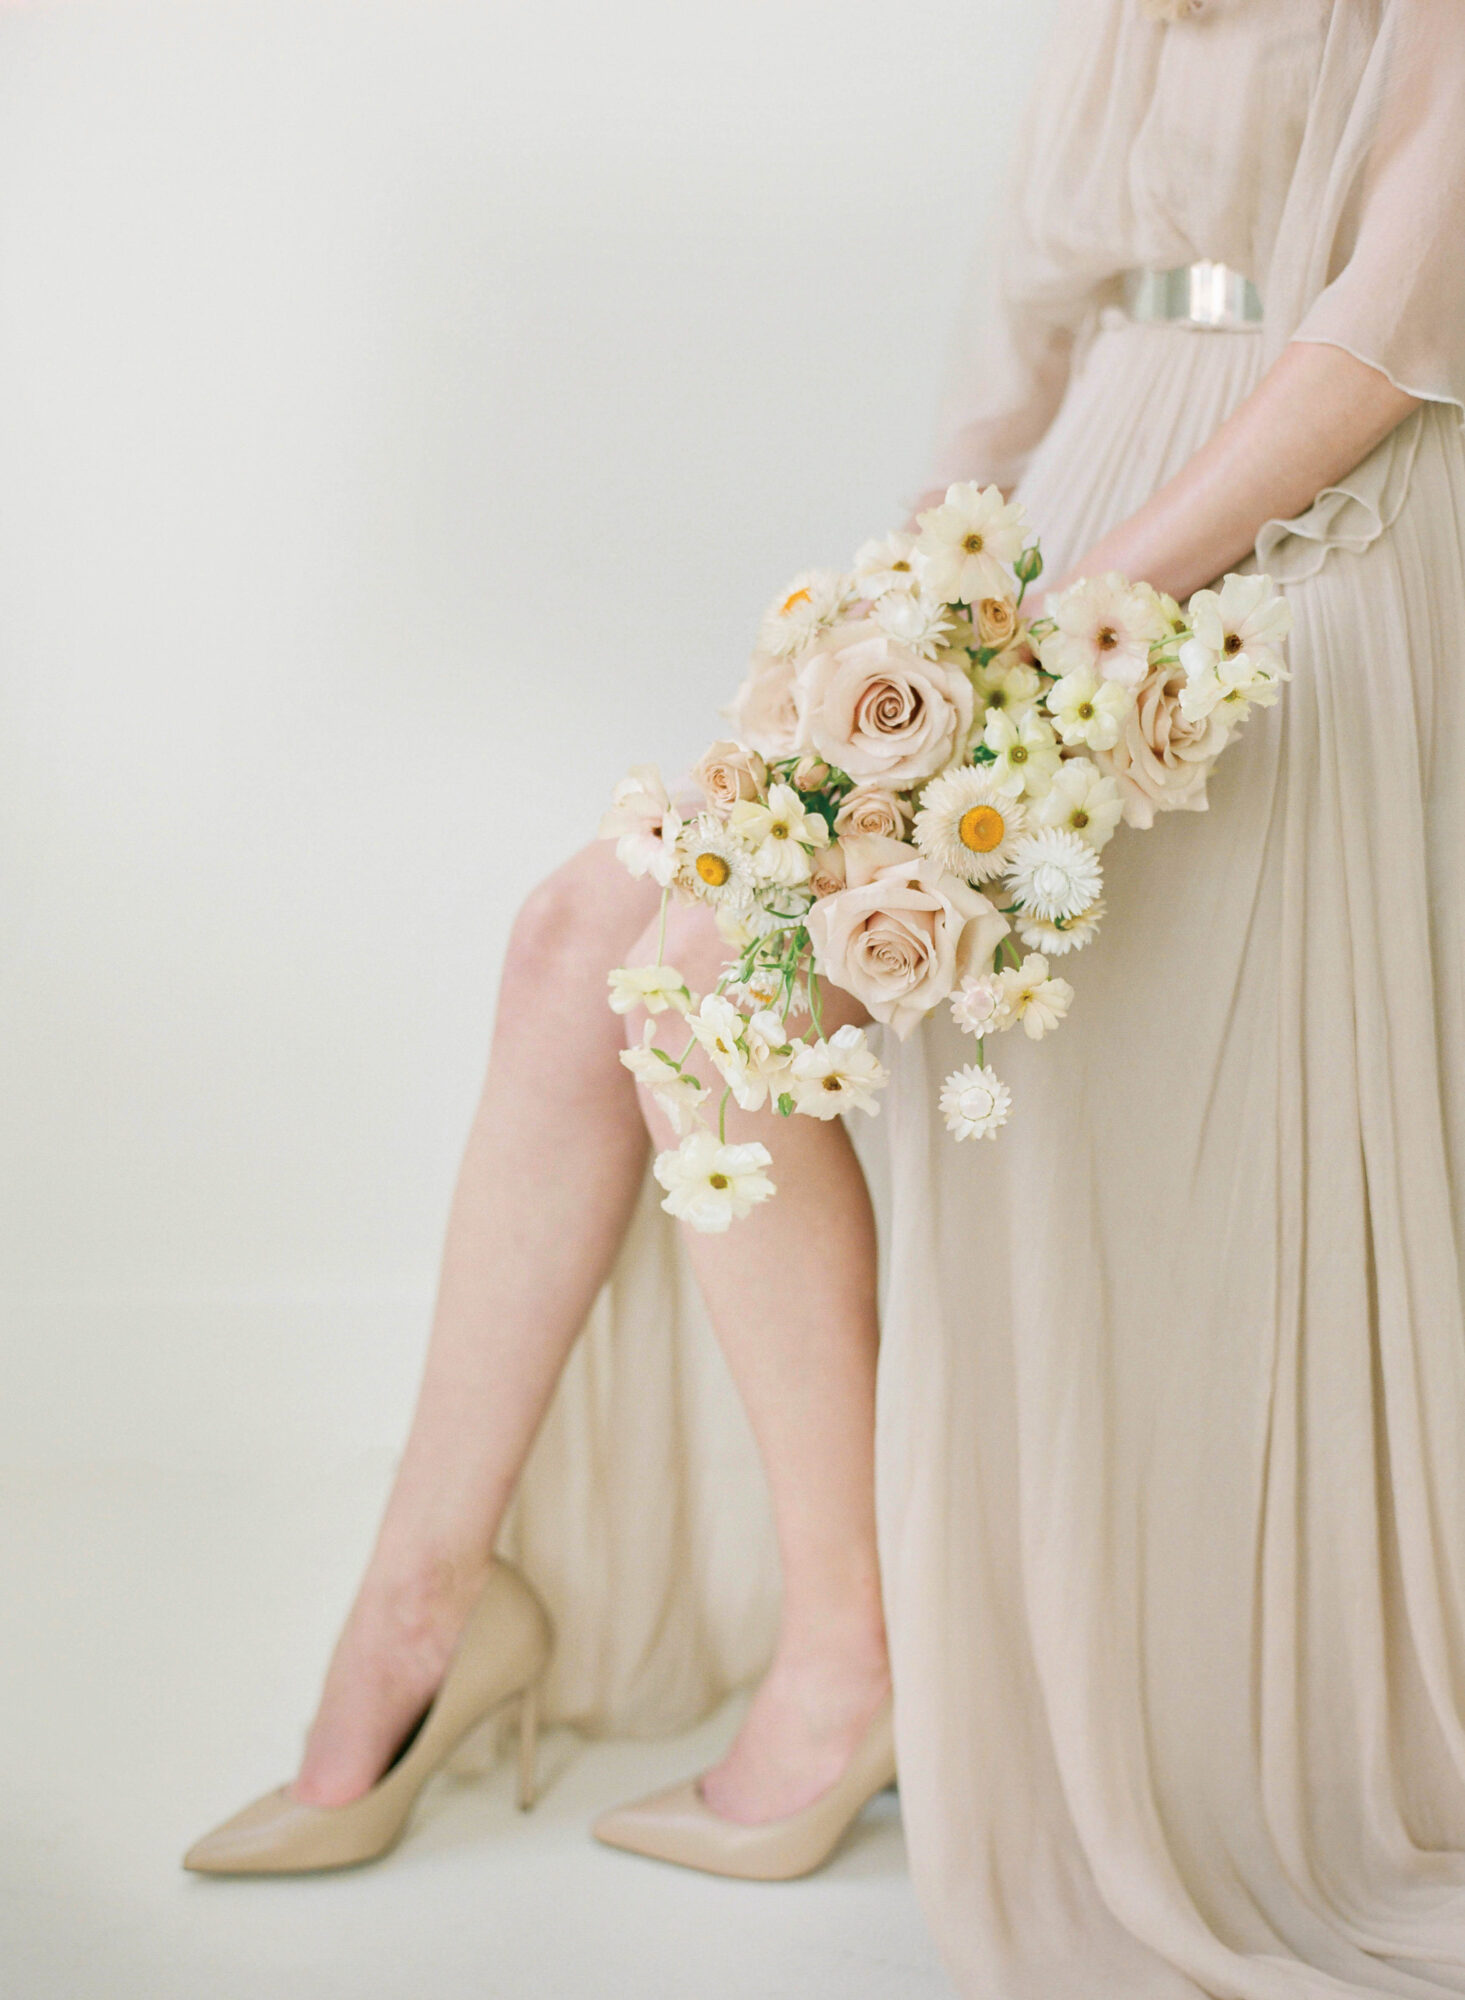 woman in ivory dress holding bouquet of flowers